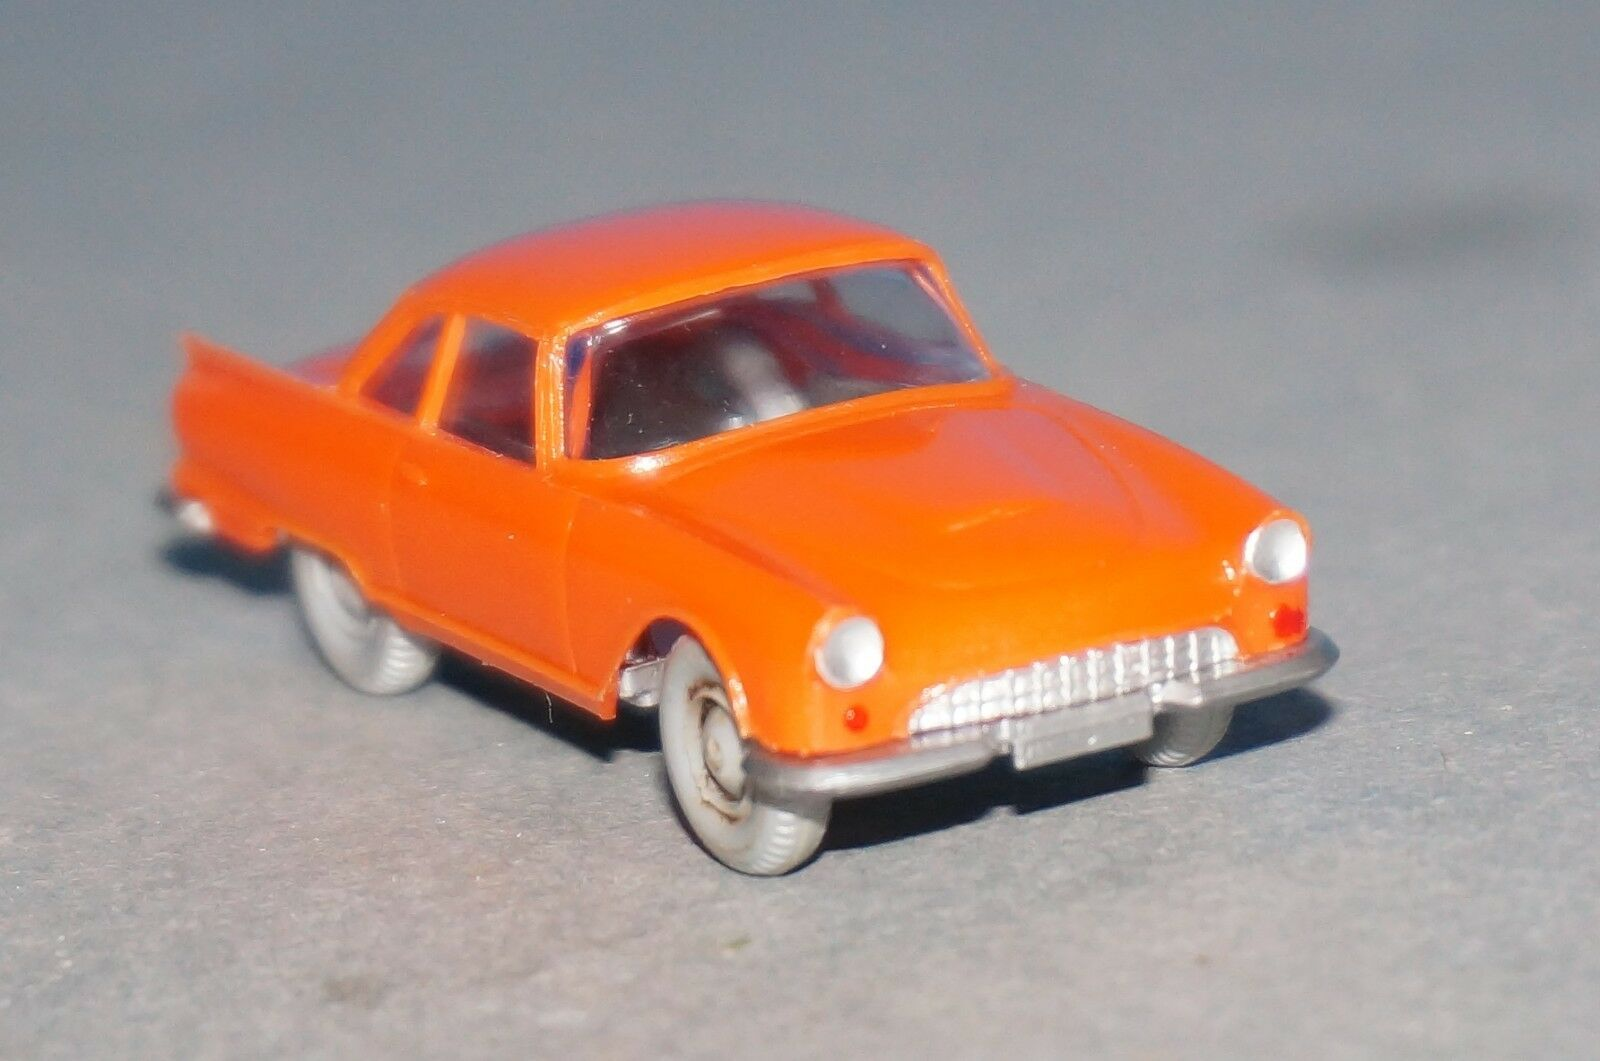 Rf3] Wiking 365 1 a DKW 1000 SP coupé Orange top, 1 87